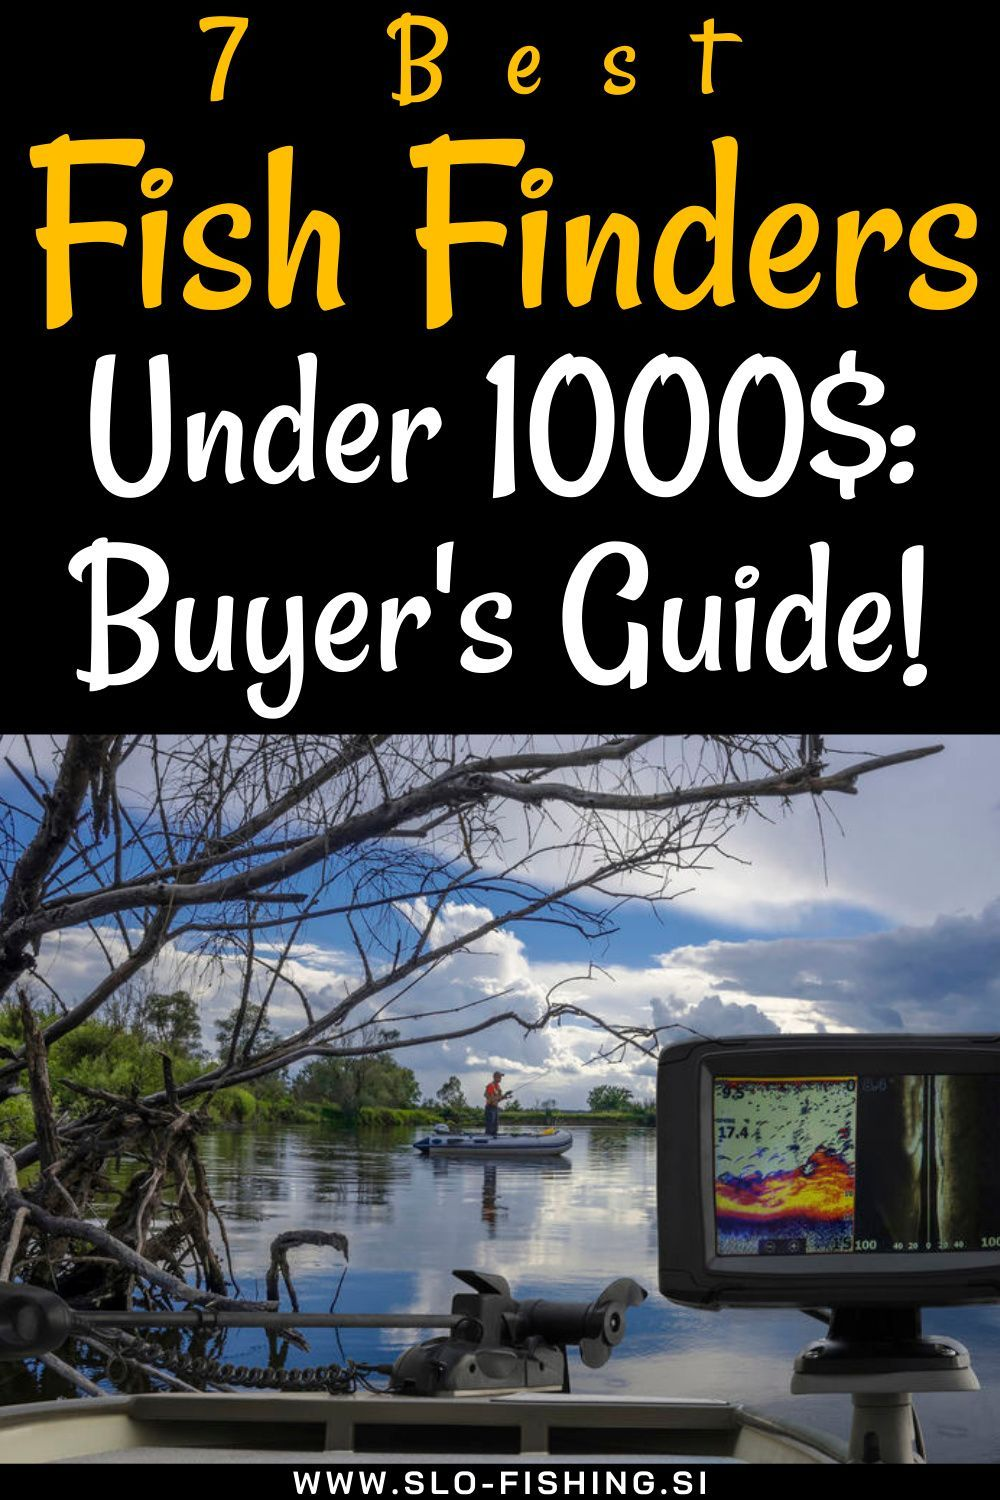 Finding fish can sometimes be a tedious job. Luckily, today we have fish finders. Here is my list of the best fish finder under 1000$. Click, click, click on picture and READ MORE! #fishing #fishinggear #fishfinders #fishsonar #fishGPS #bestfishfindersunder1000